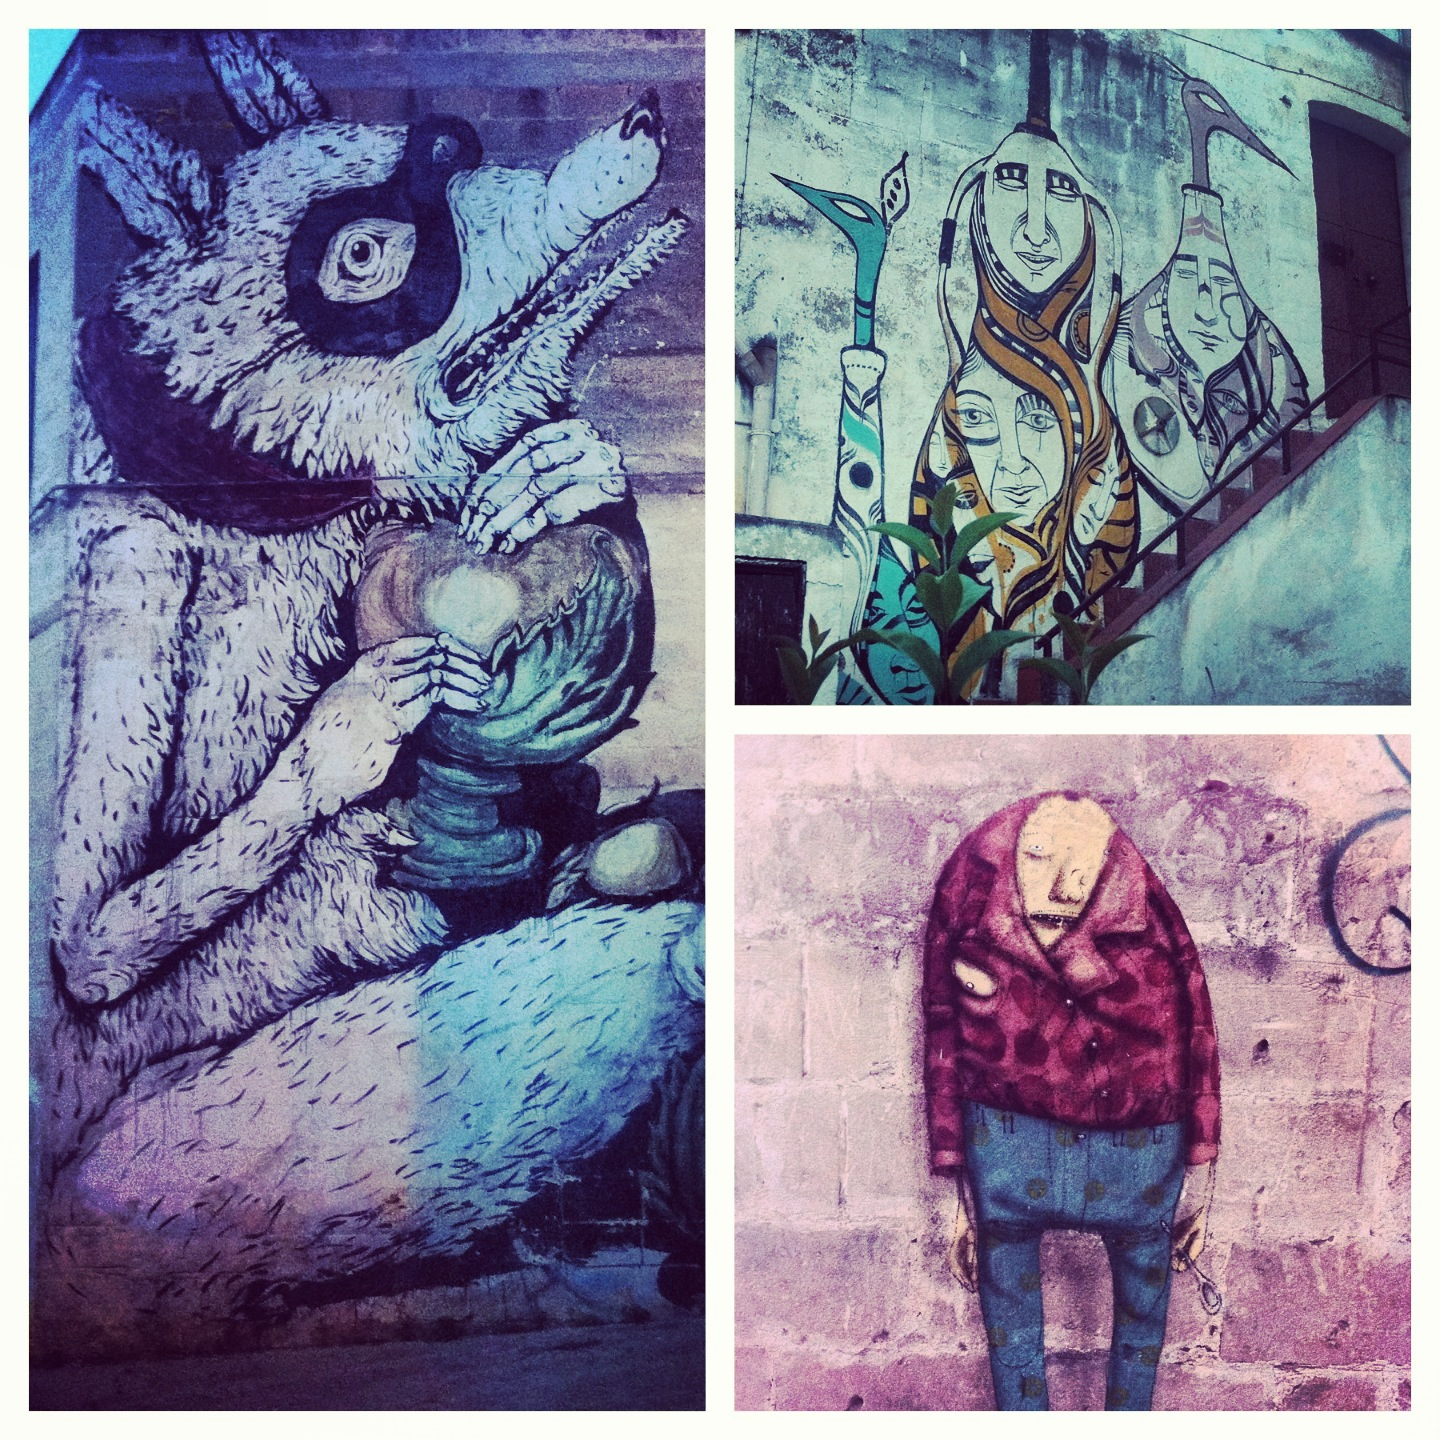 Bottom right photo done by Os Os Gemeos